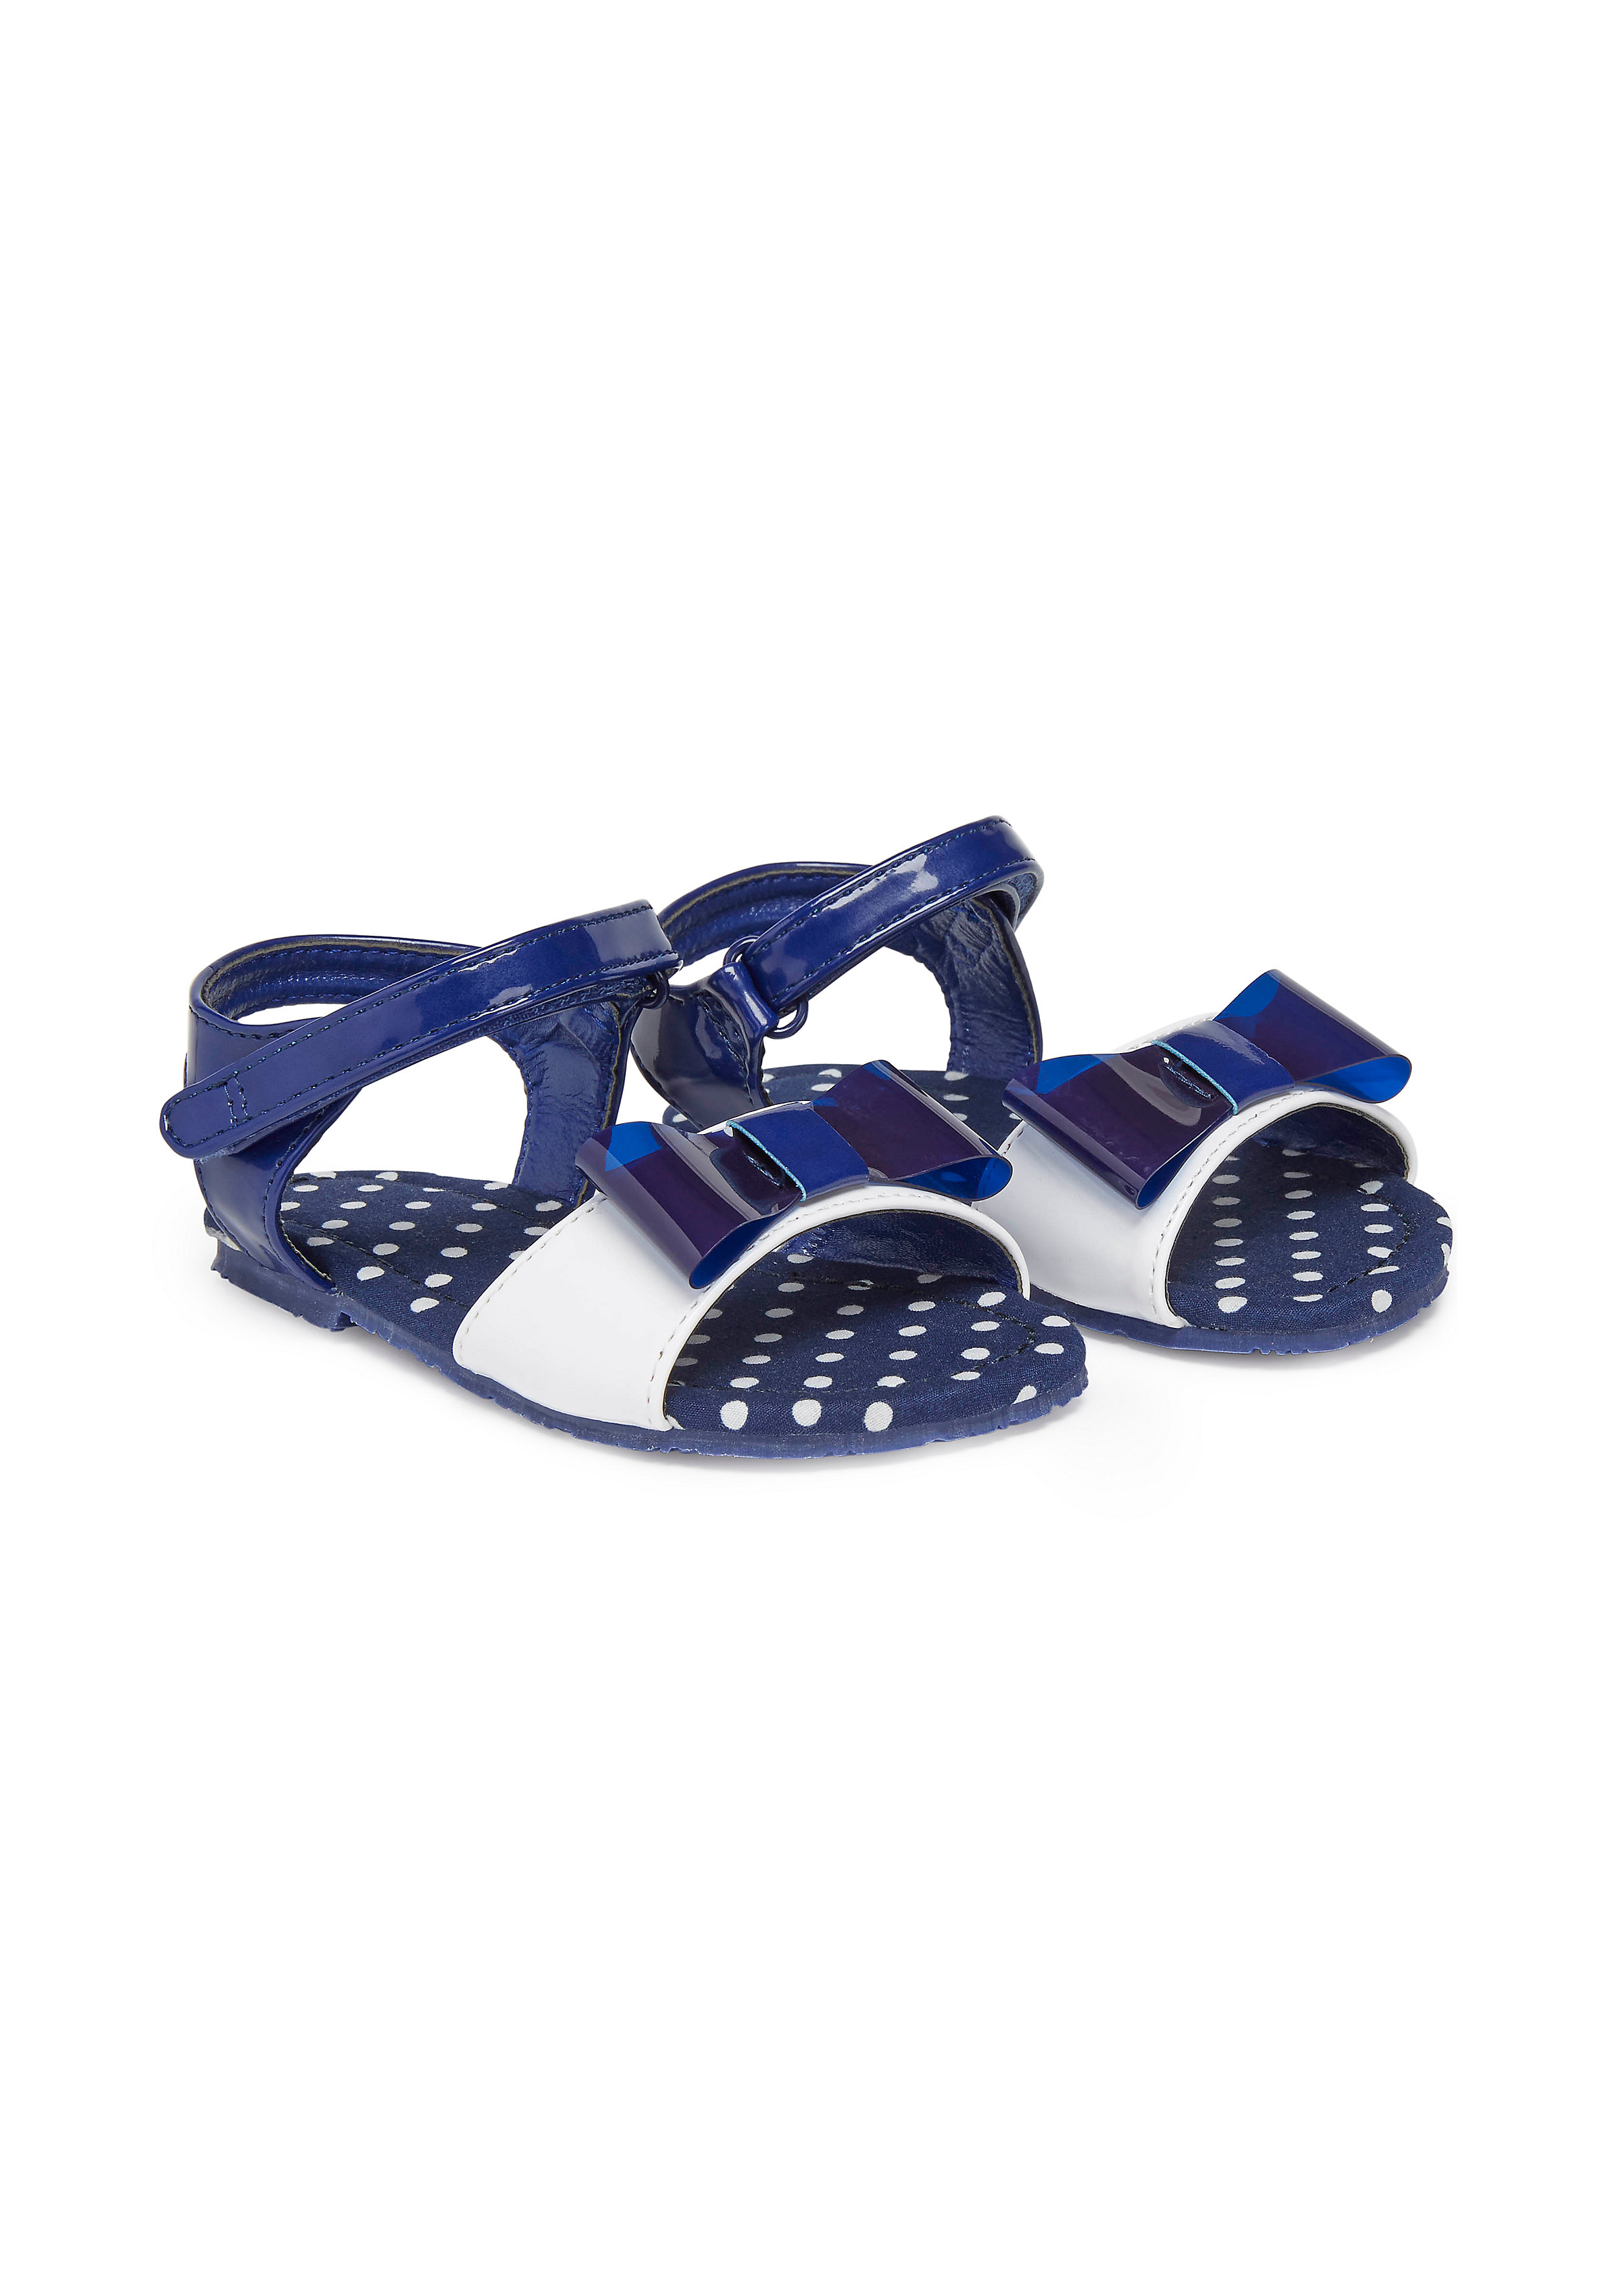 Mothercare   Girls Sandals - White